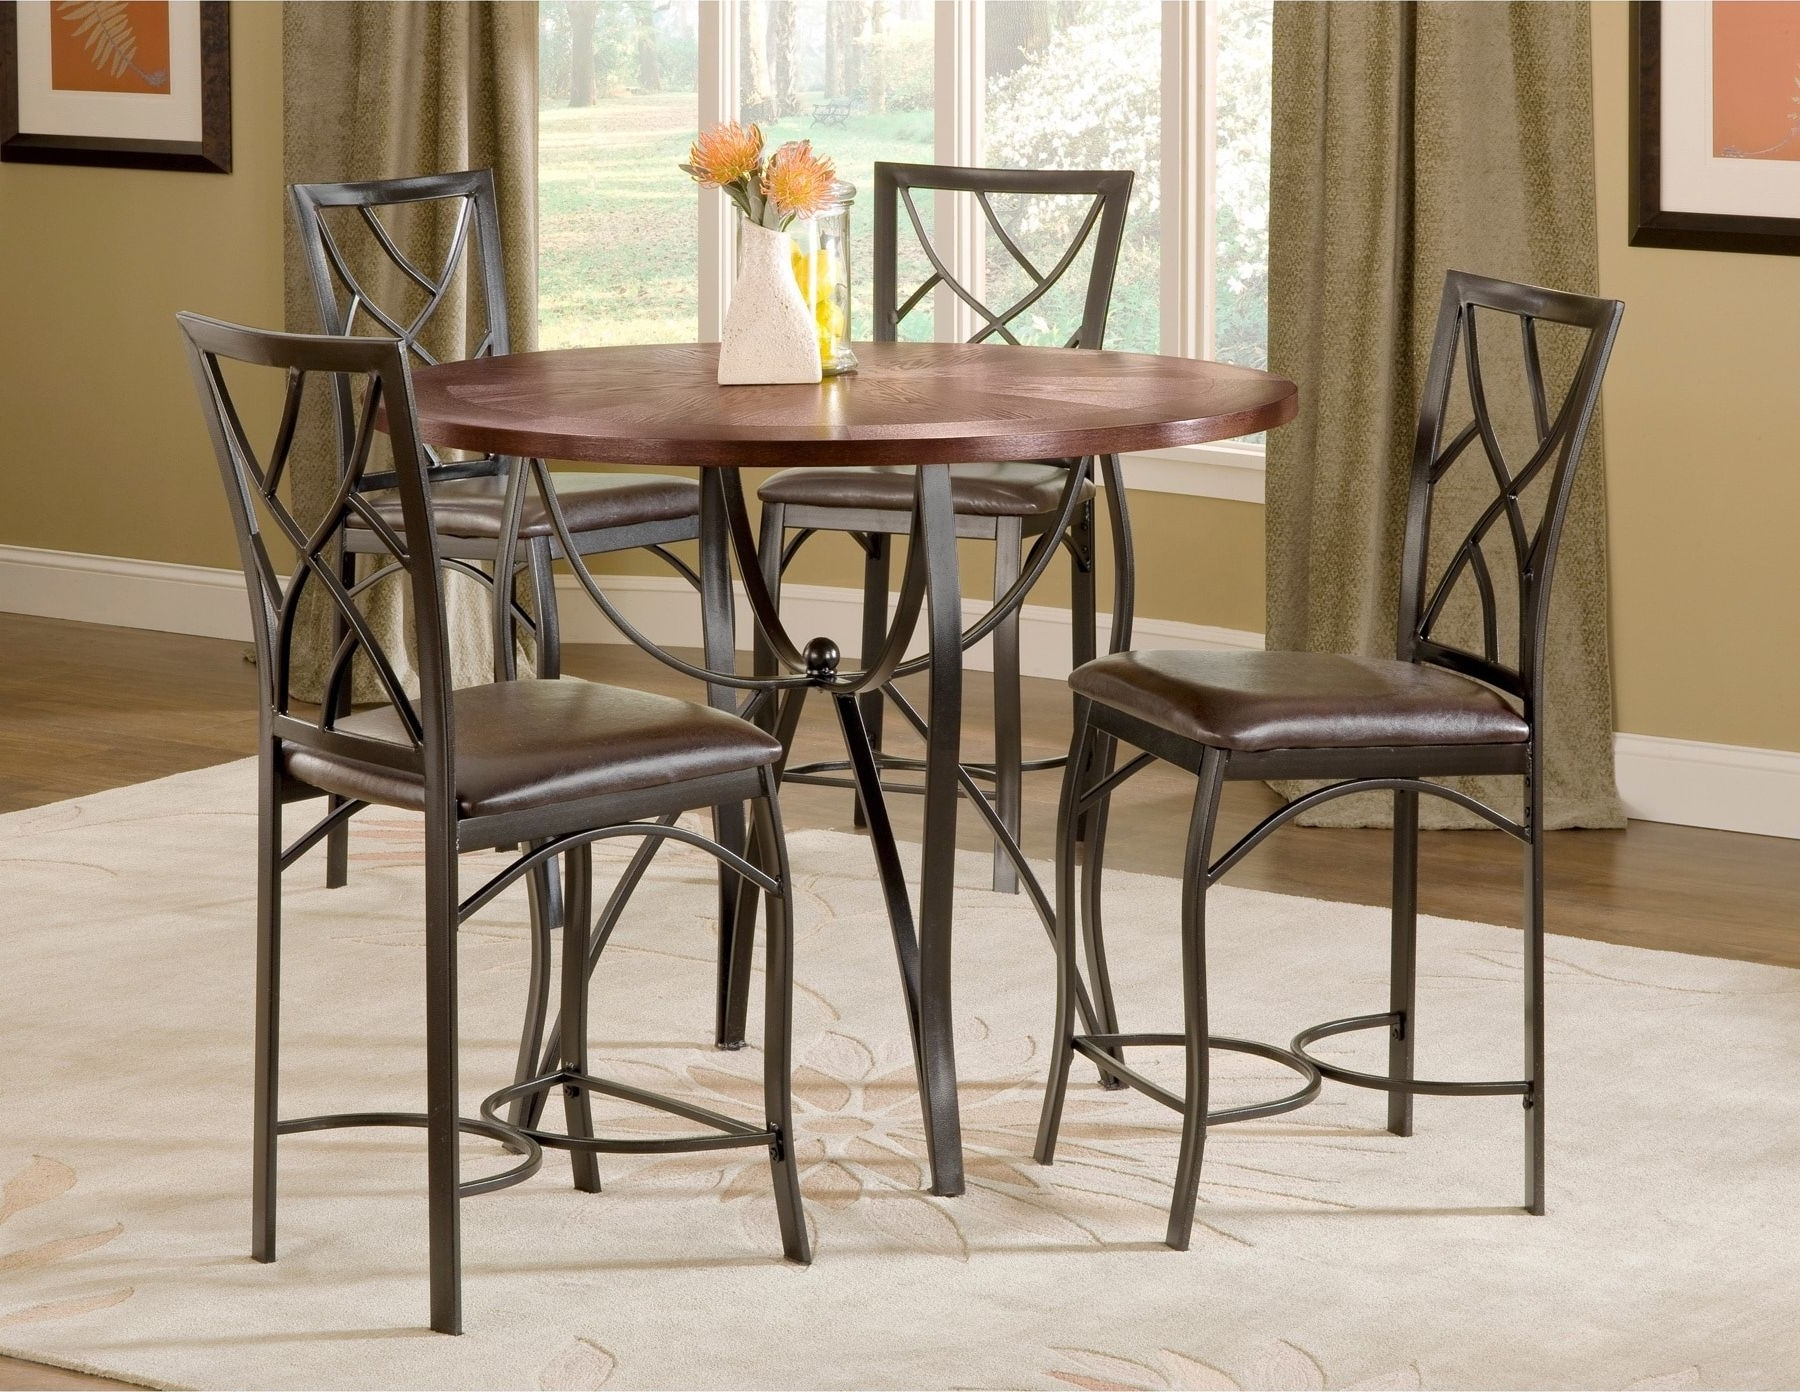 Craftsman 9 Piece Extension Dining Sets With Uph Side Chairs For Most Up To Date Sanford Merlot 5 Piece Counter Height Table And 4 Chairs Black Metal (View 6 of 25)